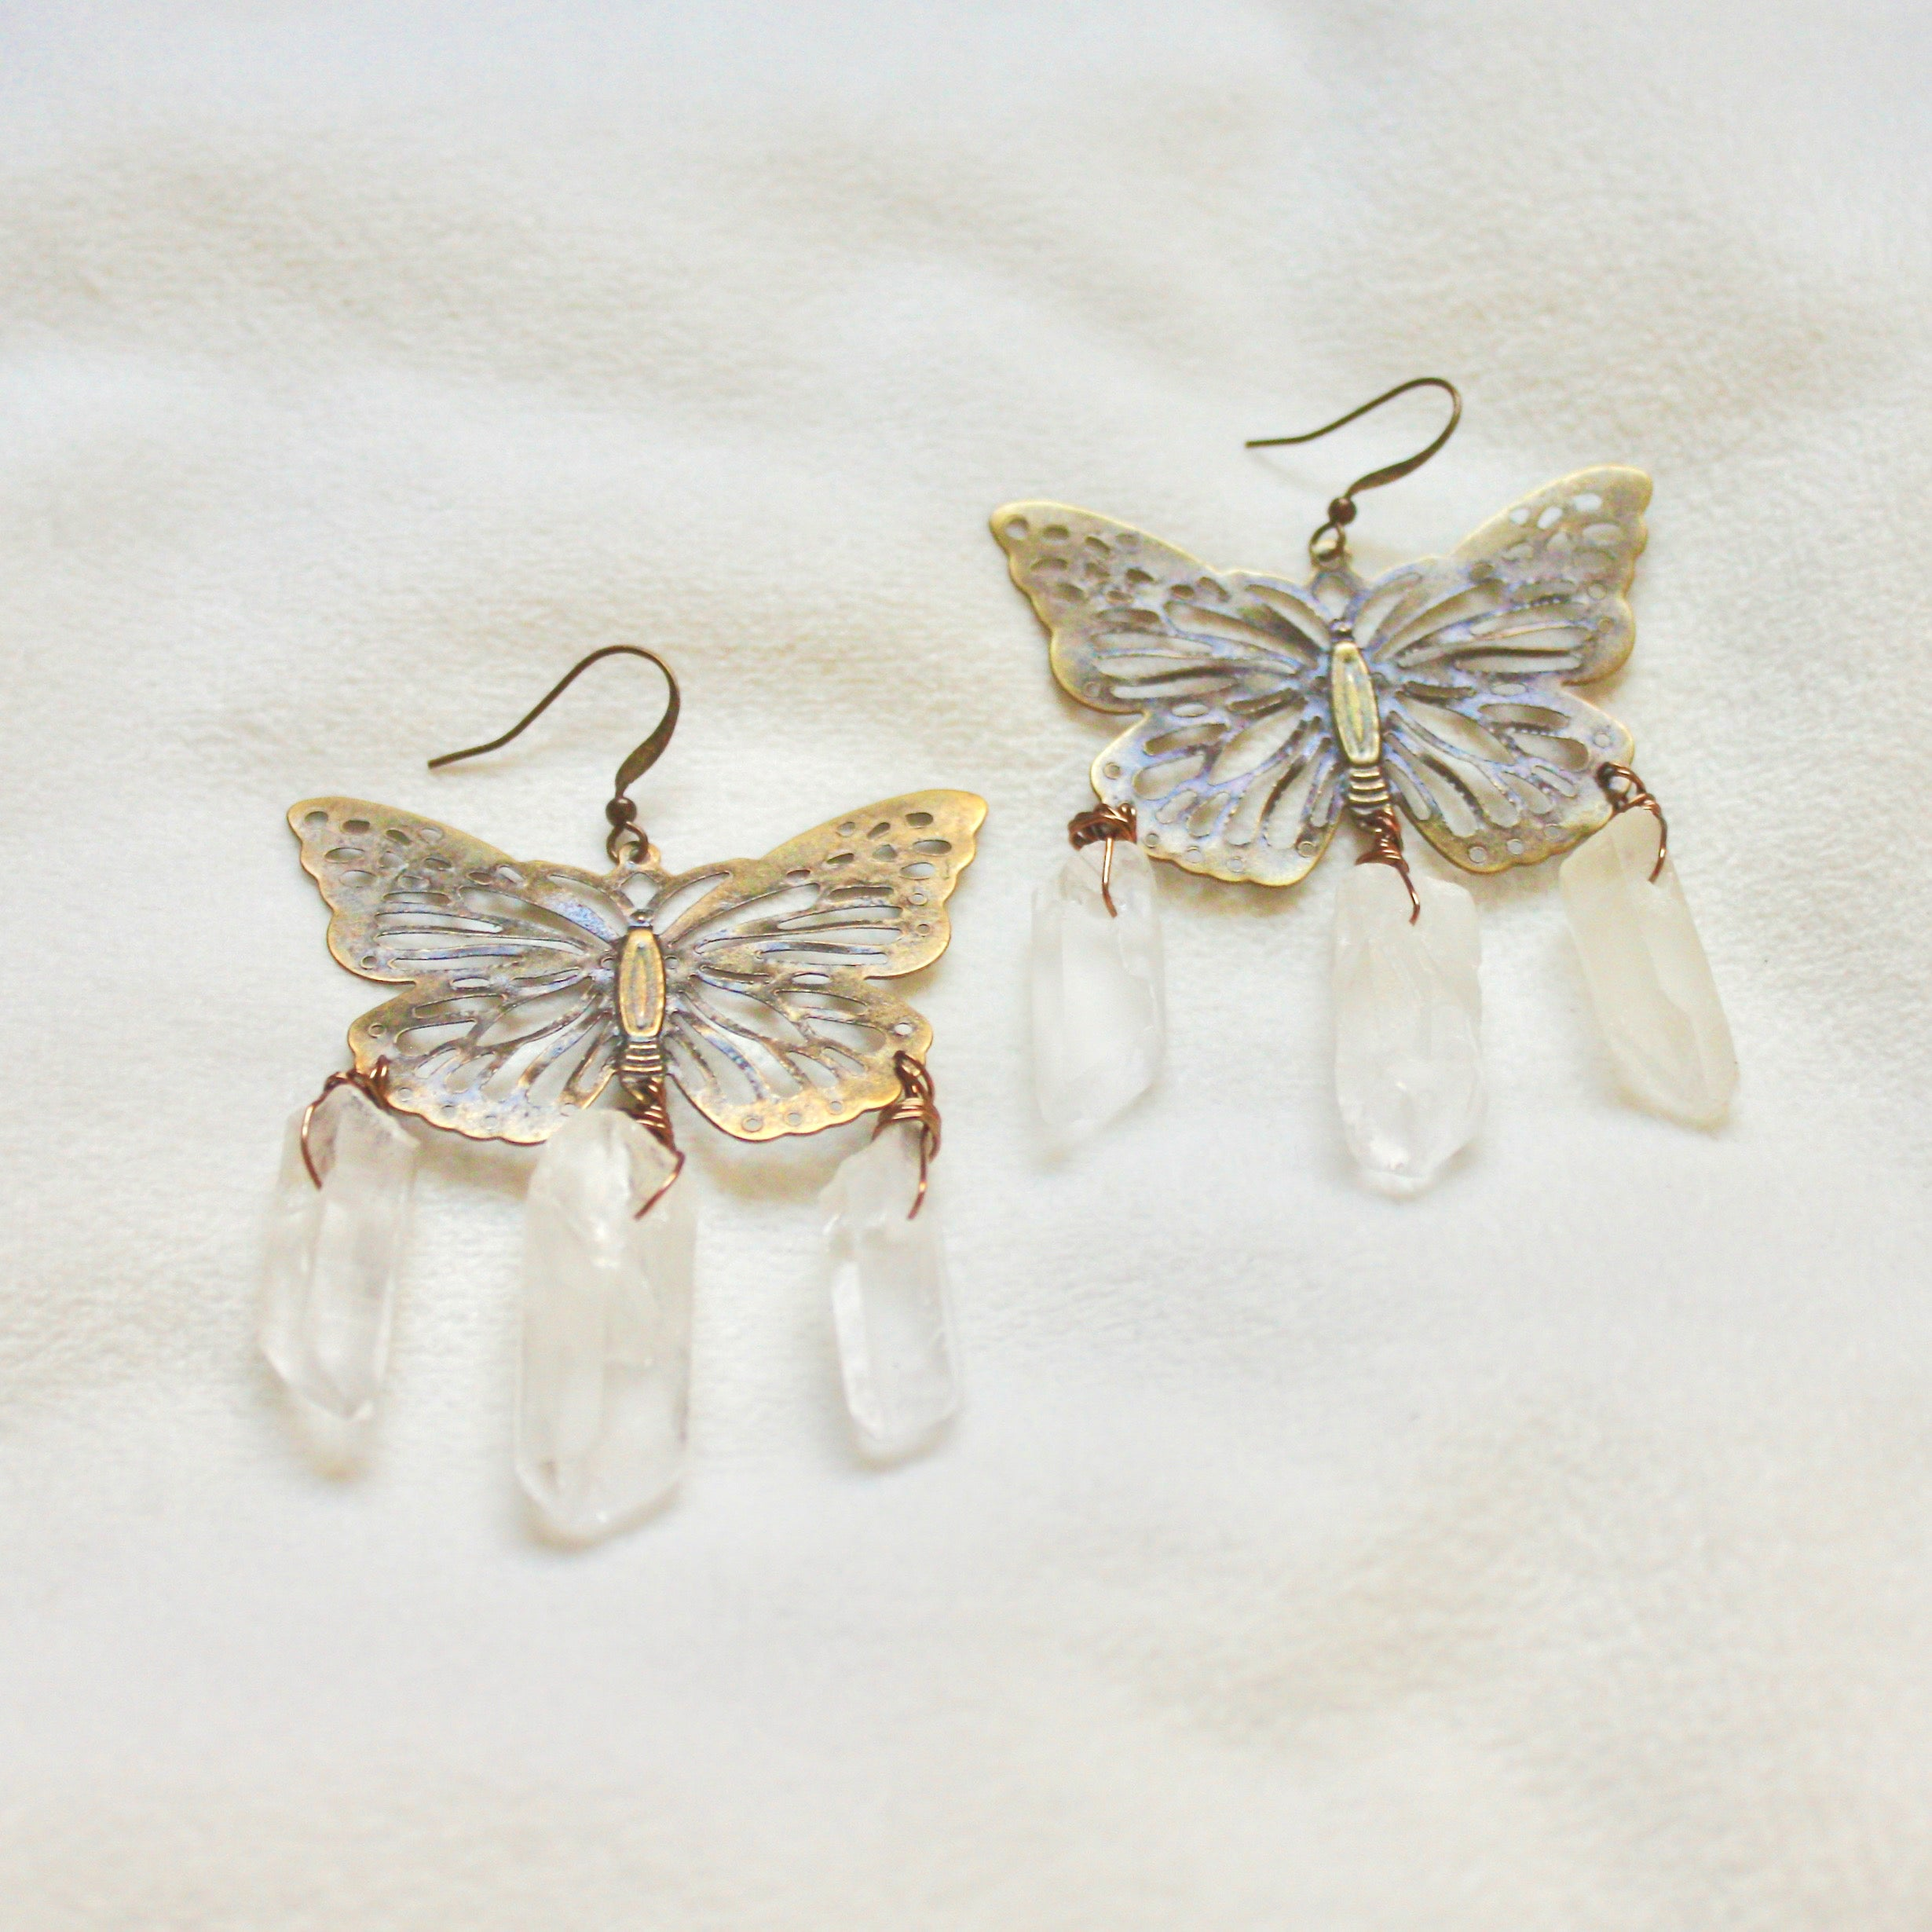 Forget Me Not Earrings in Bronze